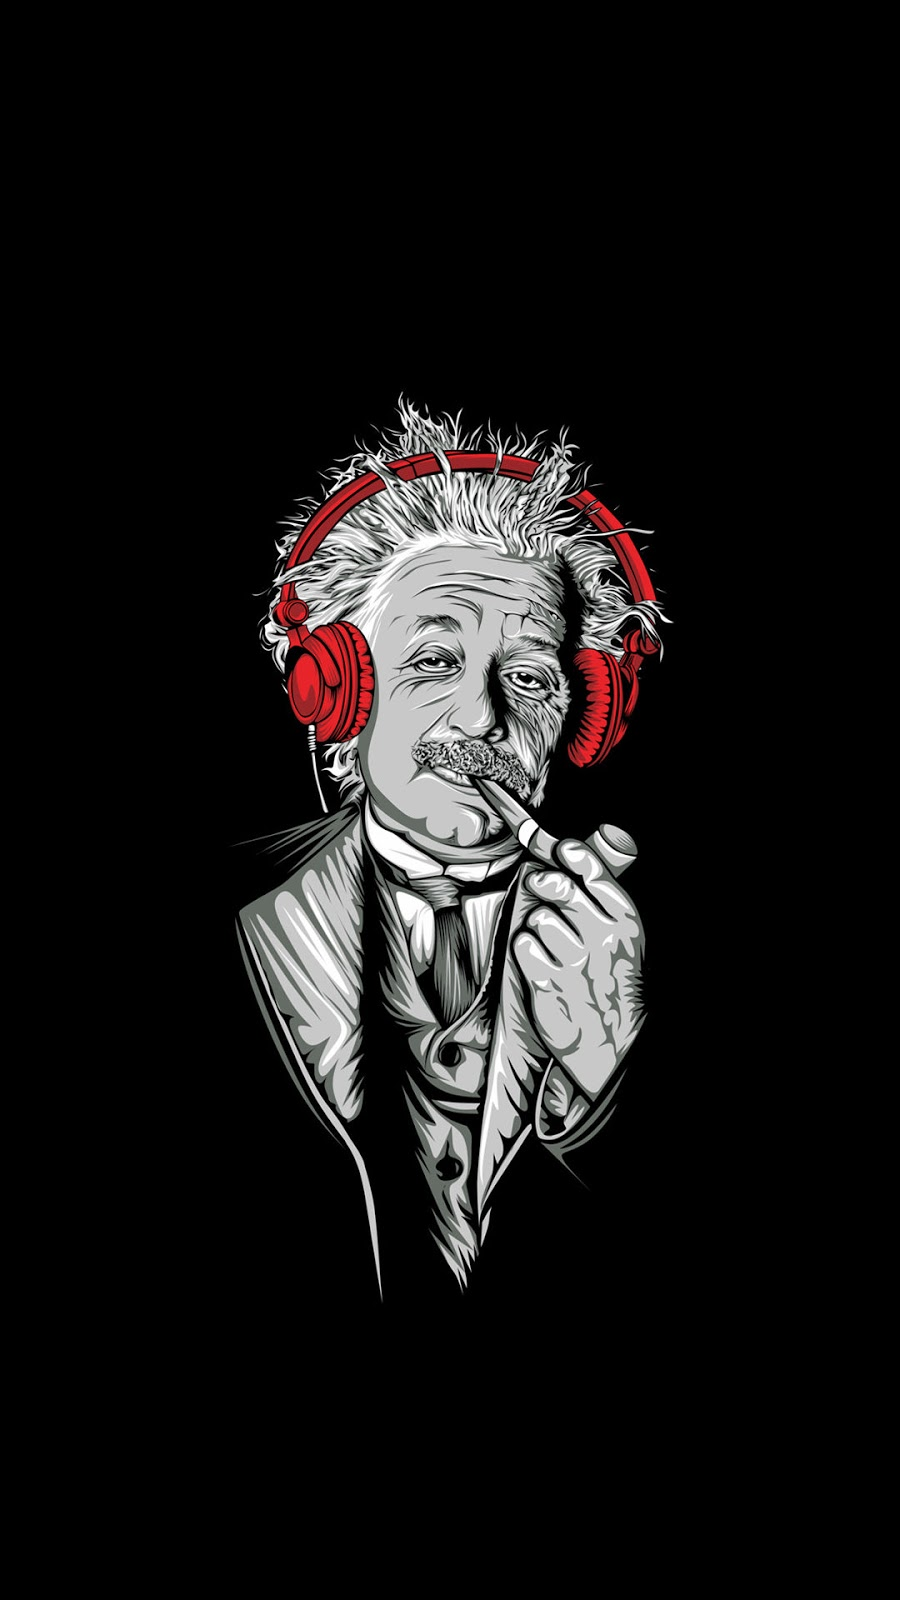 Albert Einstein Digital Art Mobile Wallpaper